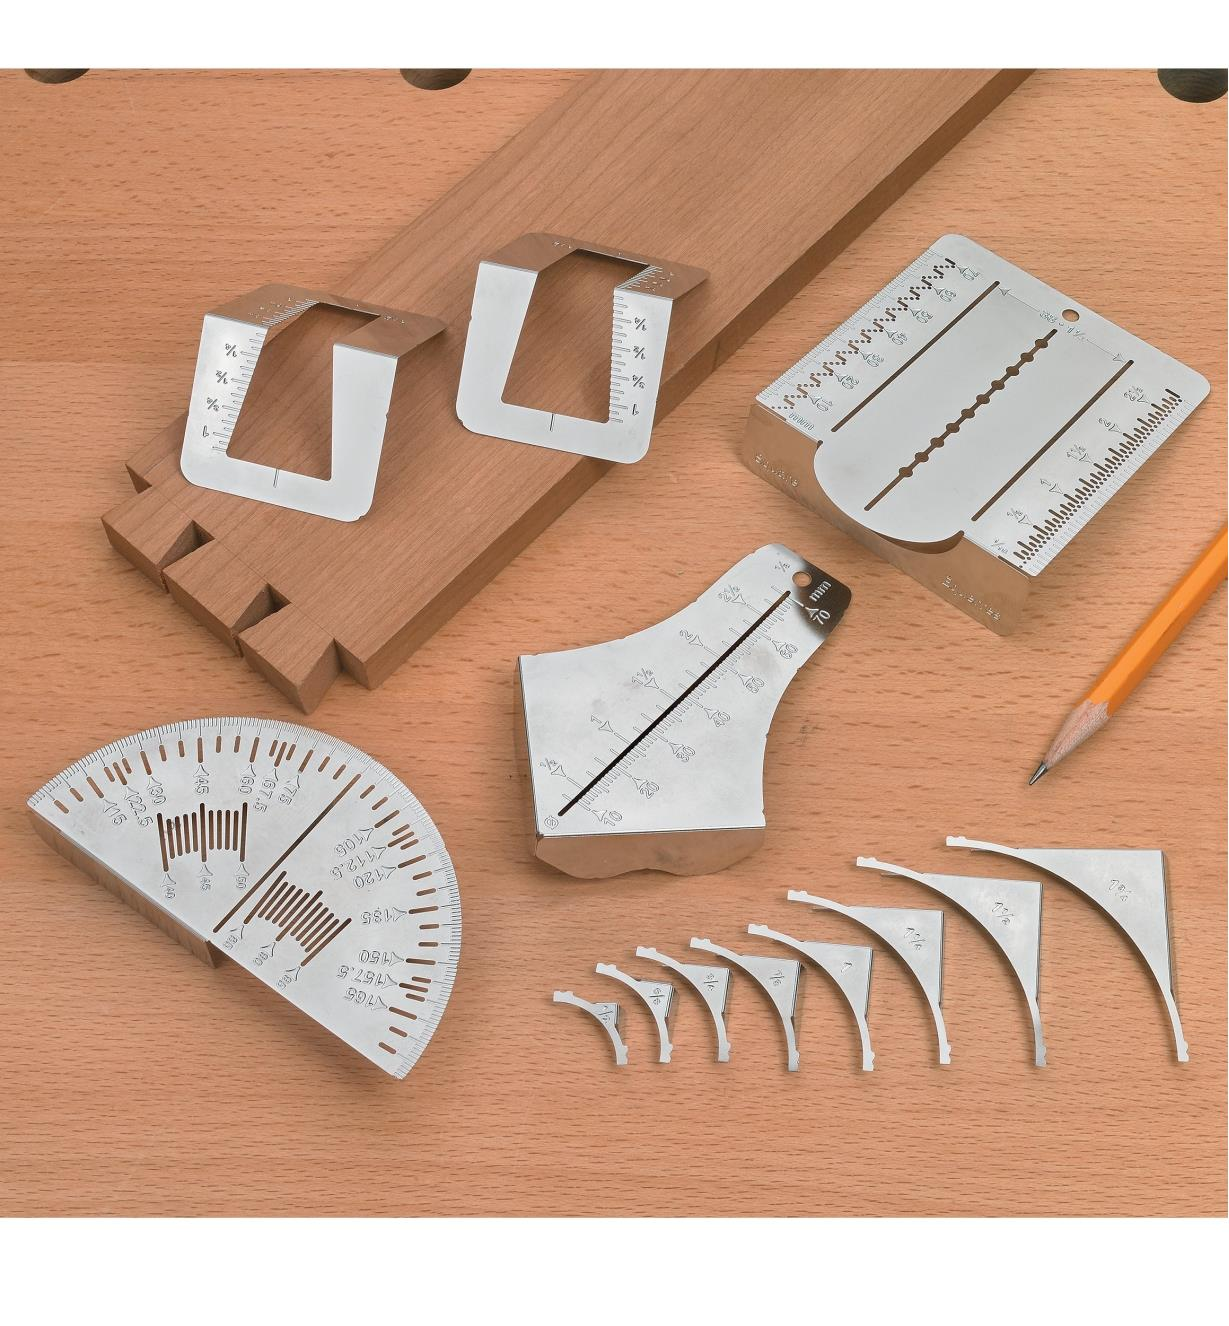 Wallet Tool Cards folded into three-dimensional shapes